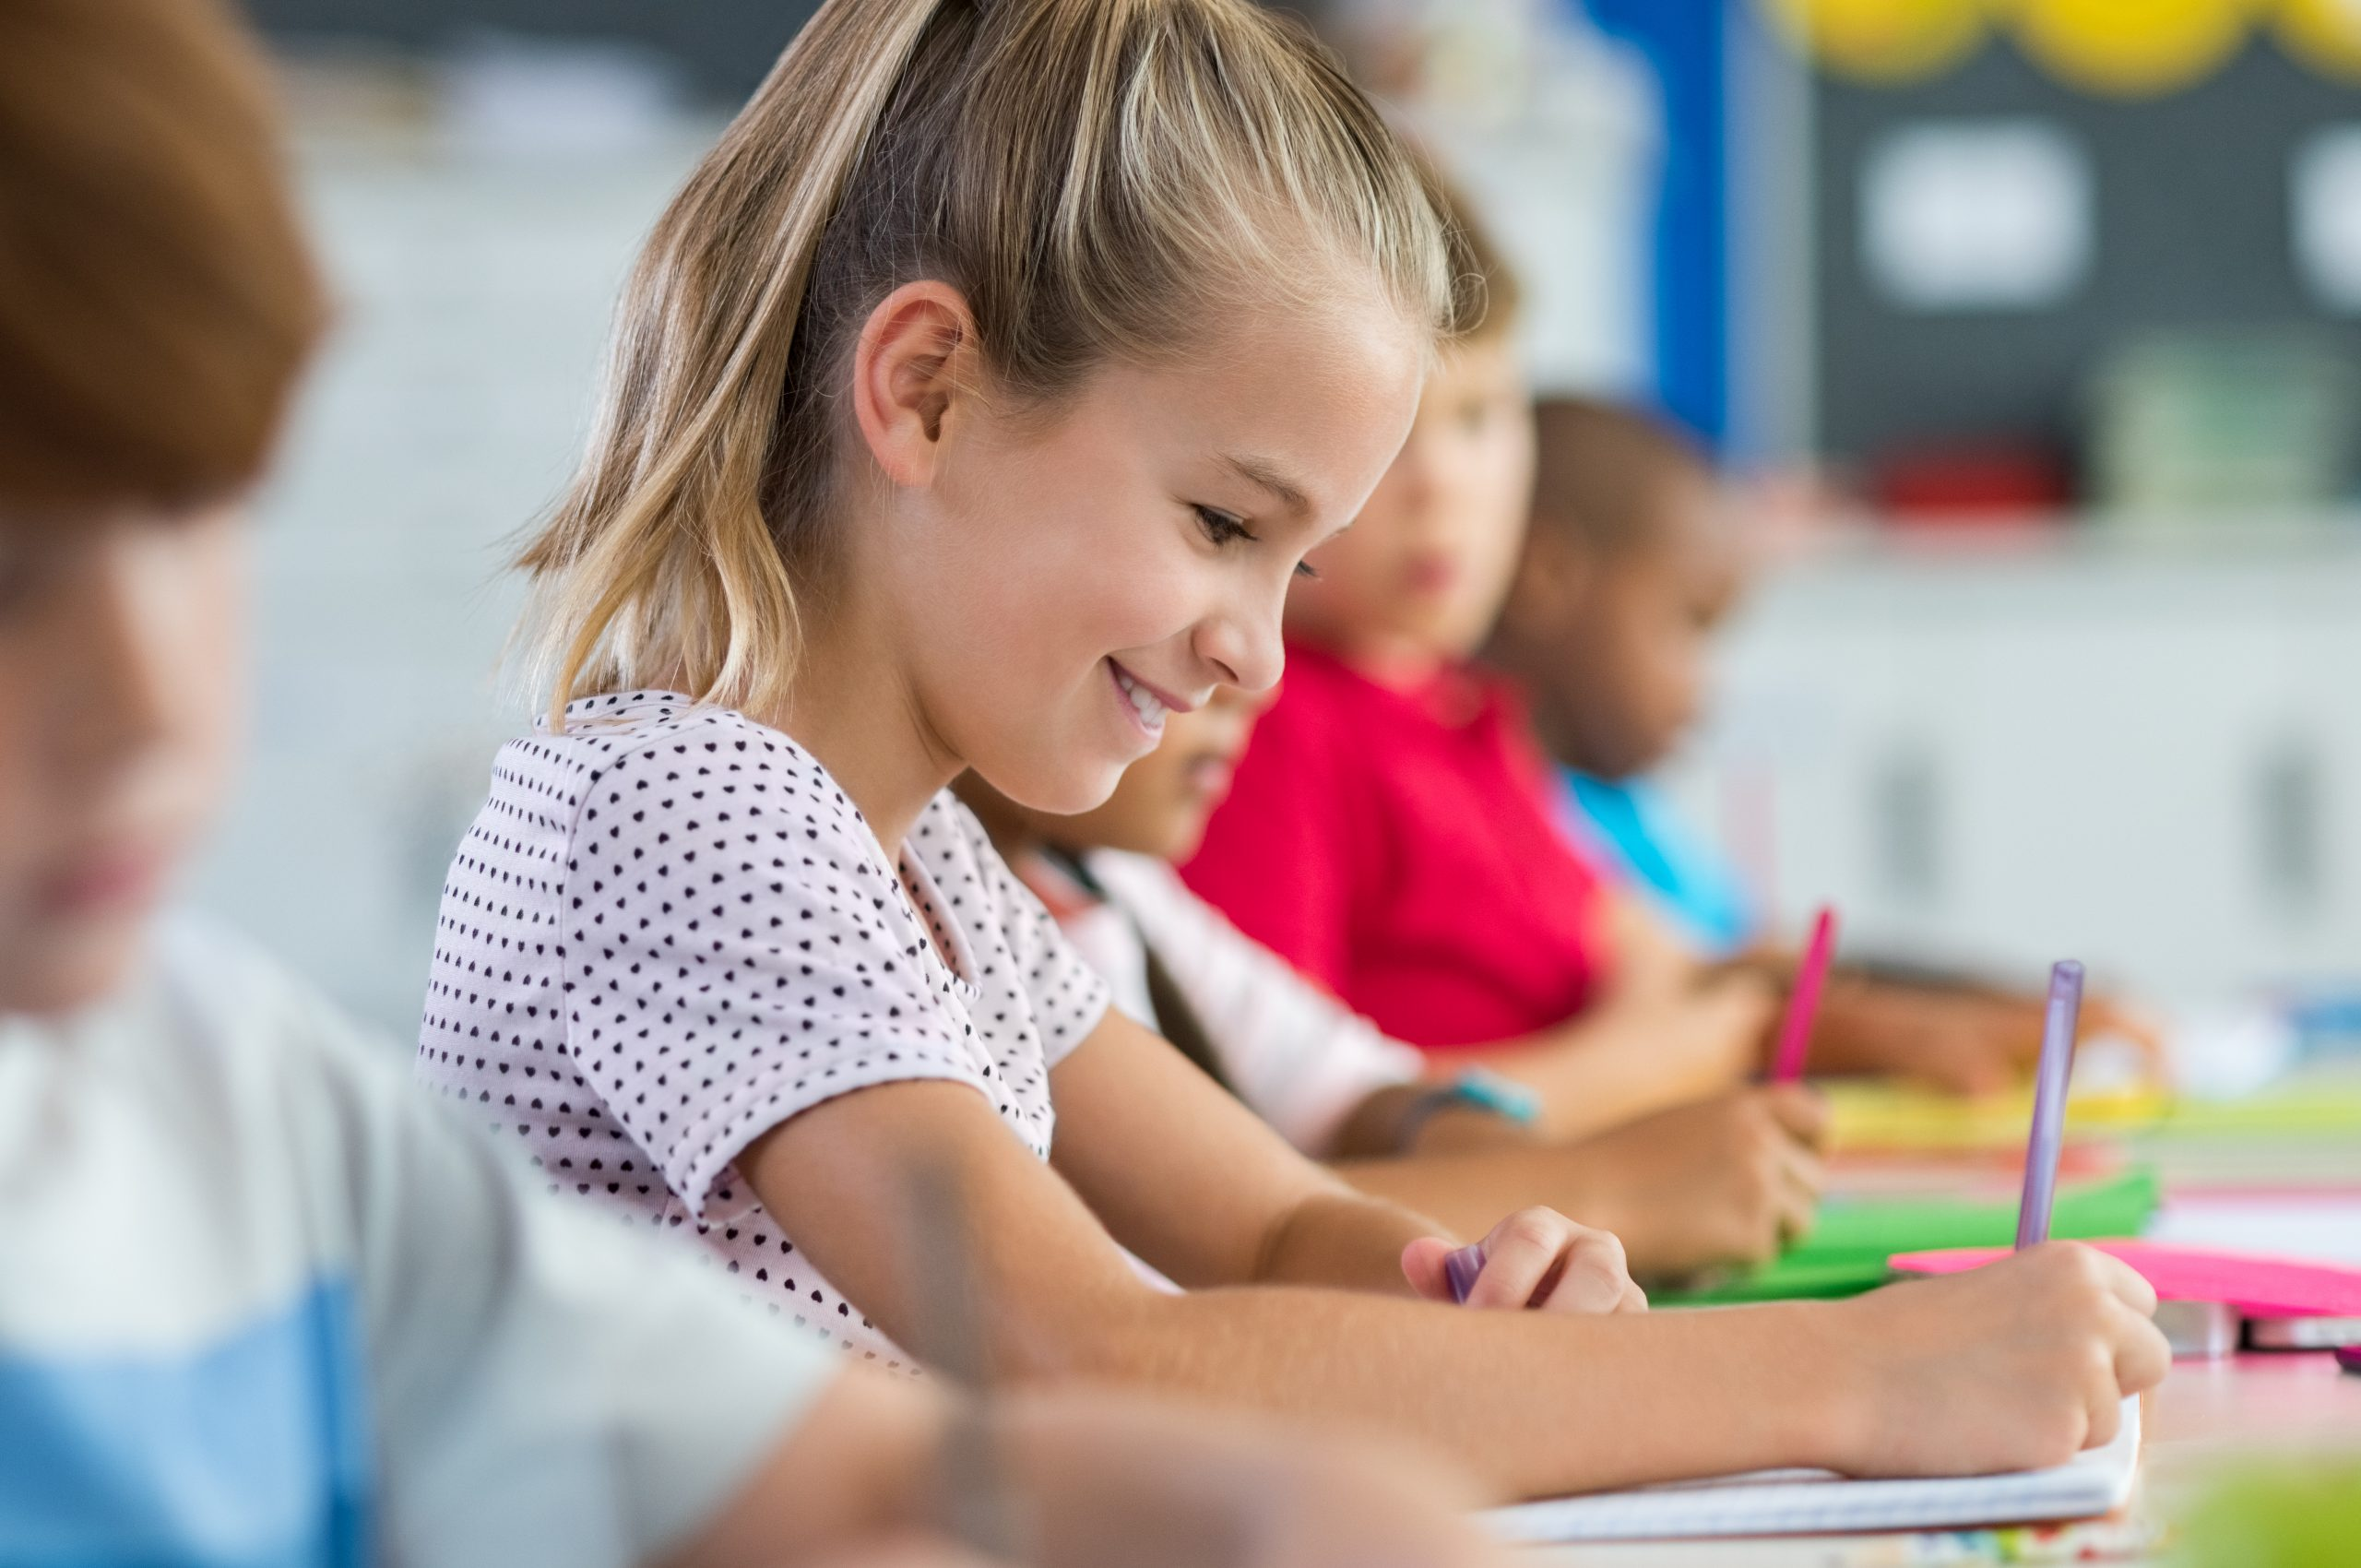 """A young schoolgirl smiles as she writes on the paper in front of her. This could represent the benefits of psychoeducational testing in Tampa, FL. Search """"psychoeducational testing near me"""" to learn more about psych-ed testing today."""